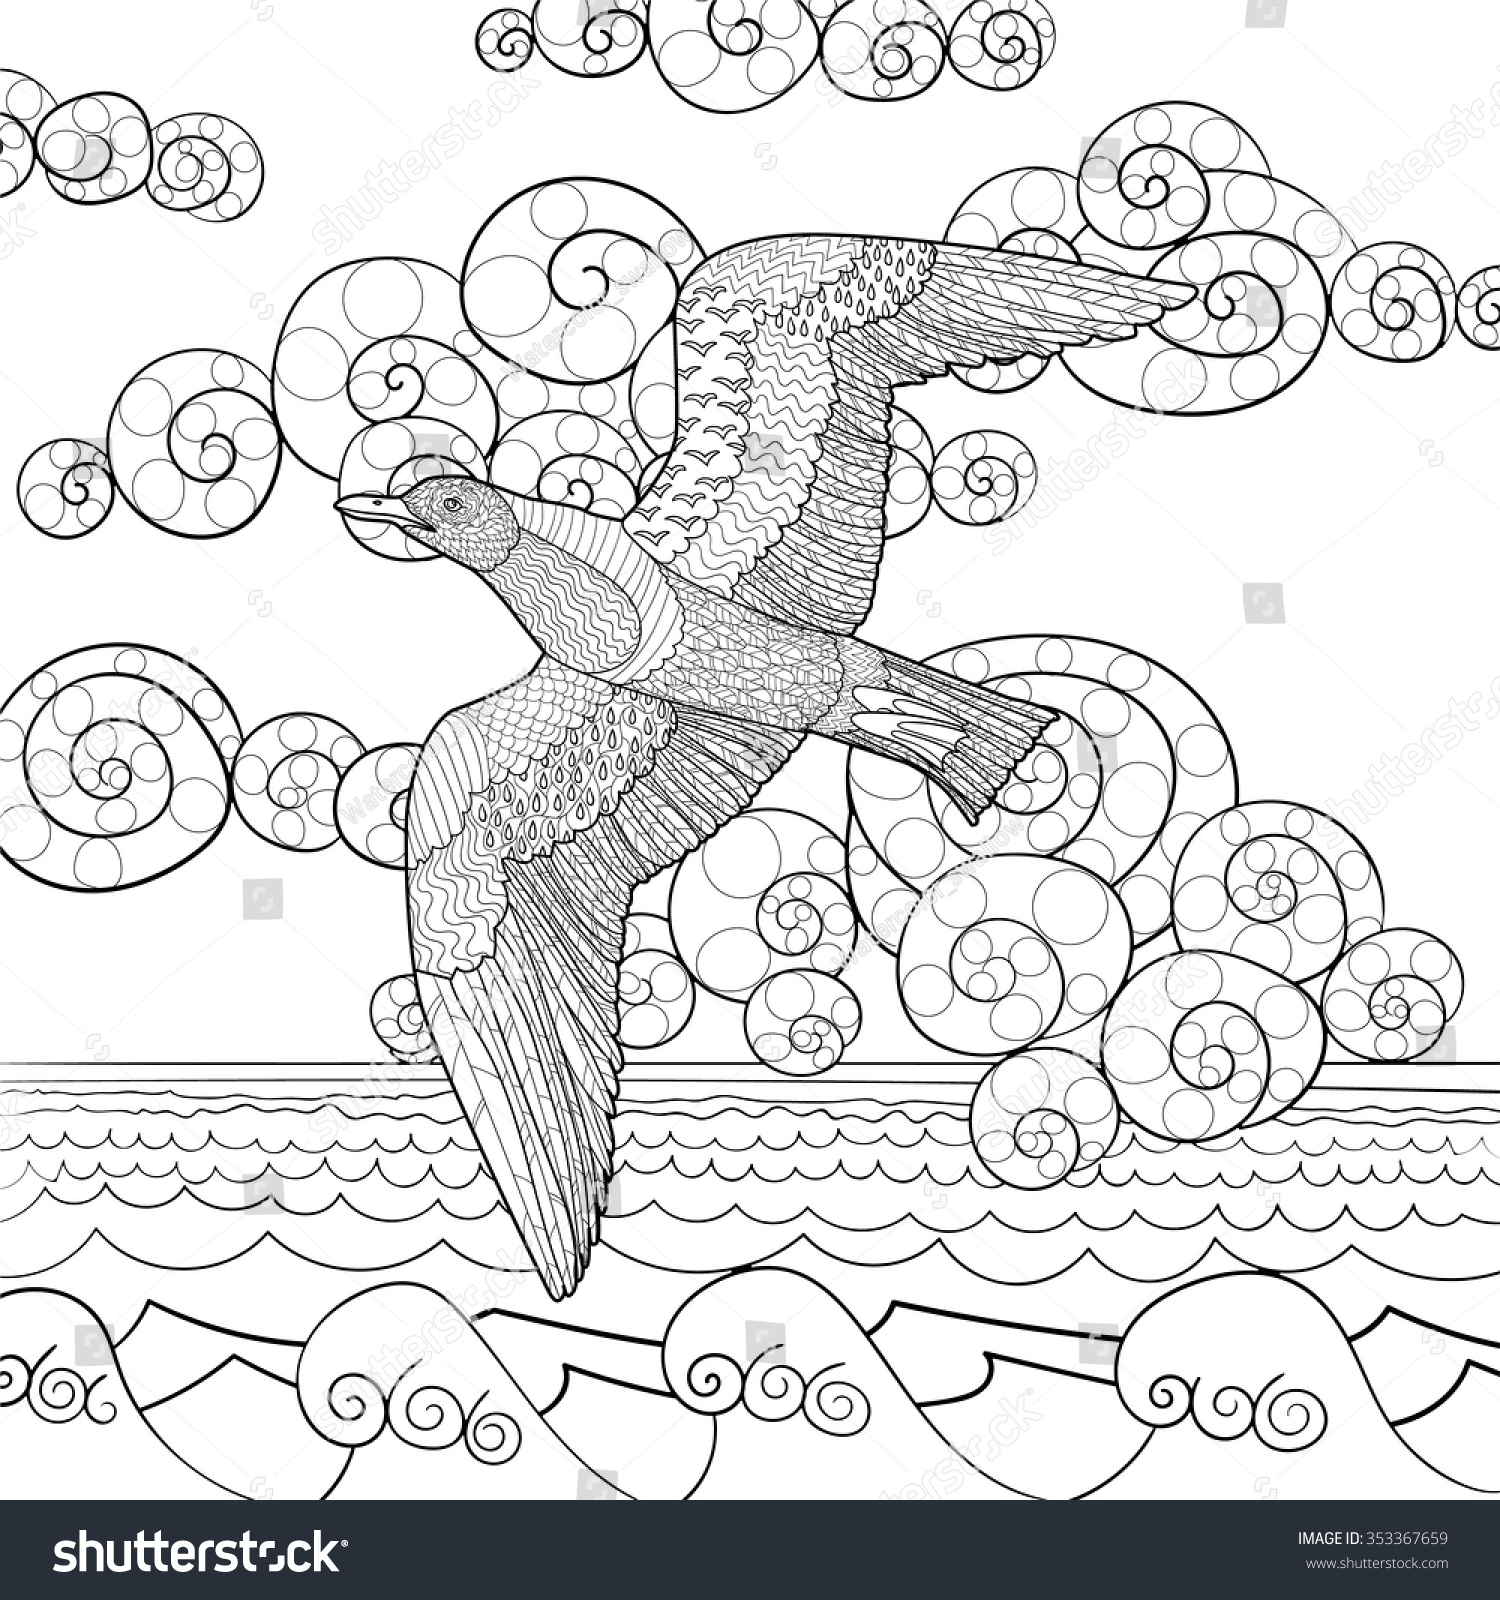 Stock vector ethnic animal doodle detail pattern killer whale - Flying Seagull With High Details Adult Antistress Coloring Page Black White Hand Drawn Doodle